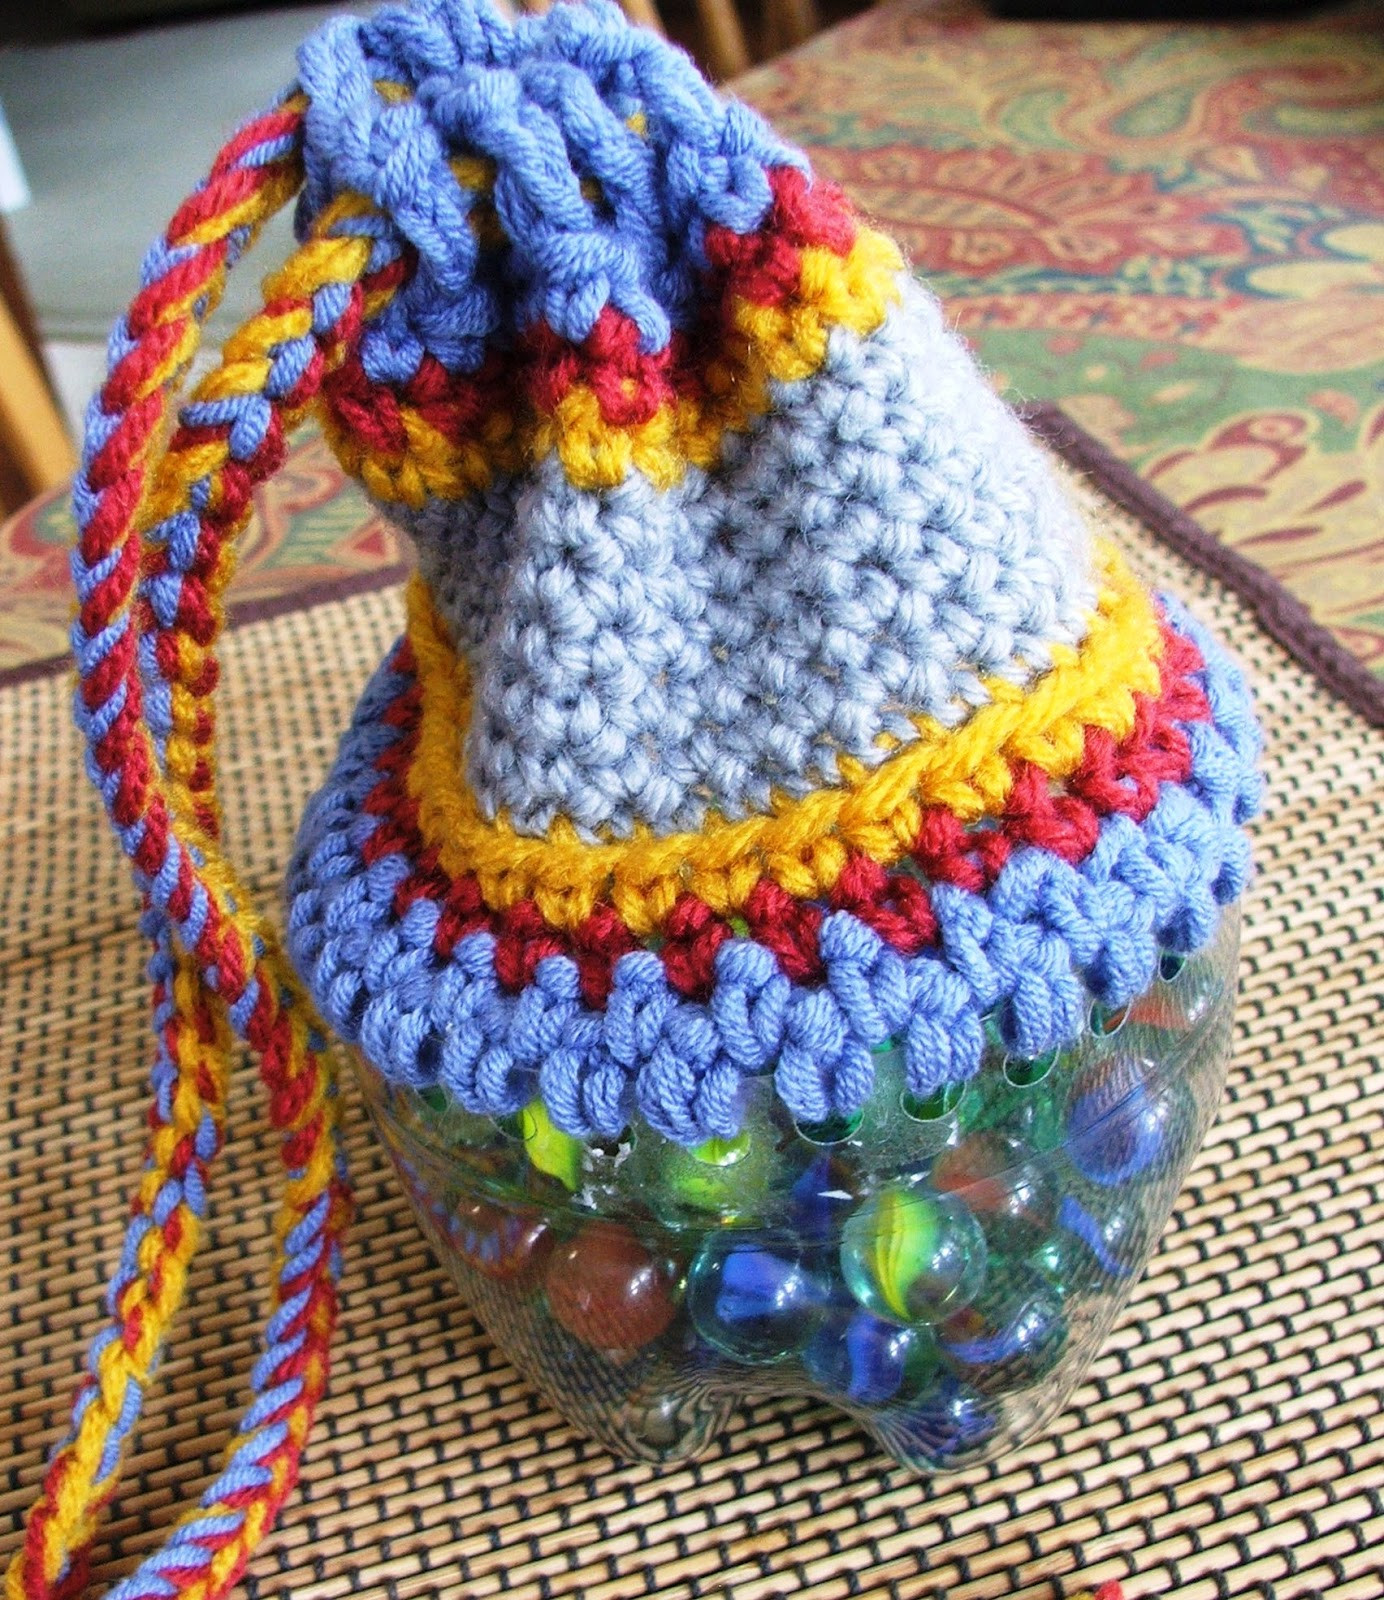 Lovely Susan S Hippie Crochet Little Crocheted Jug Project From Free Hippie Crochet Patterns Of New 49 Pictures Free Hippie Crochet Patterns